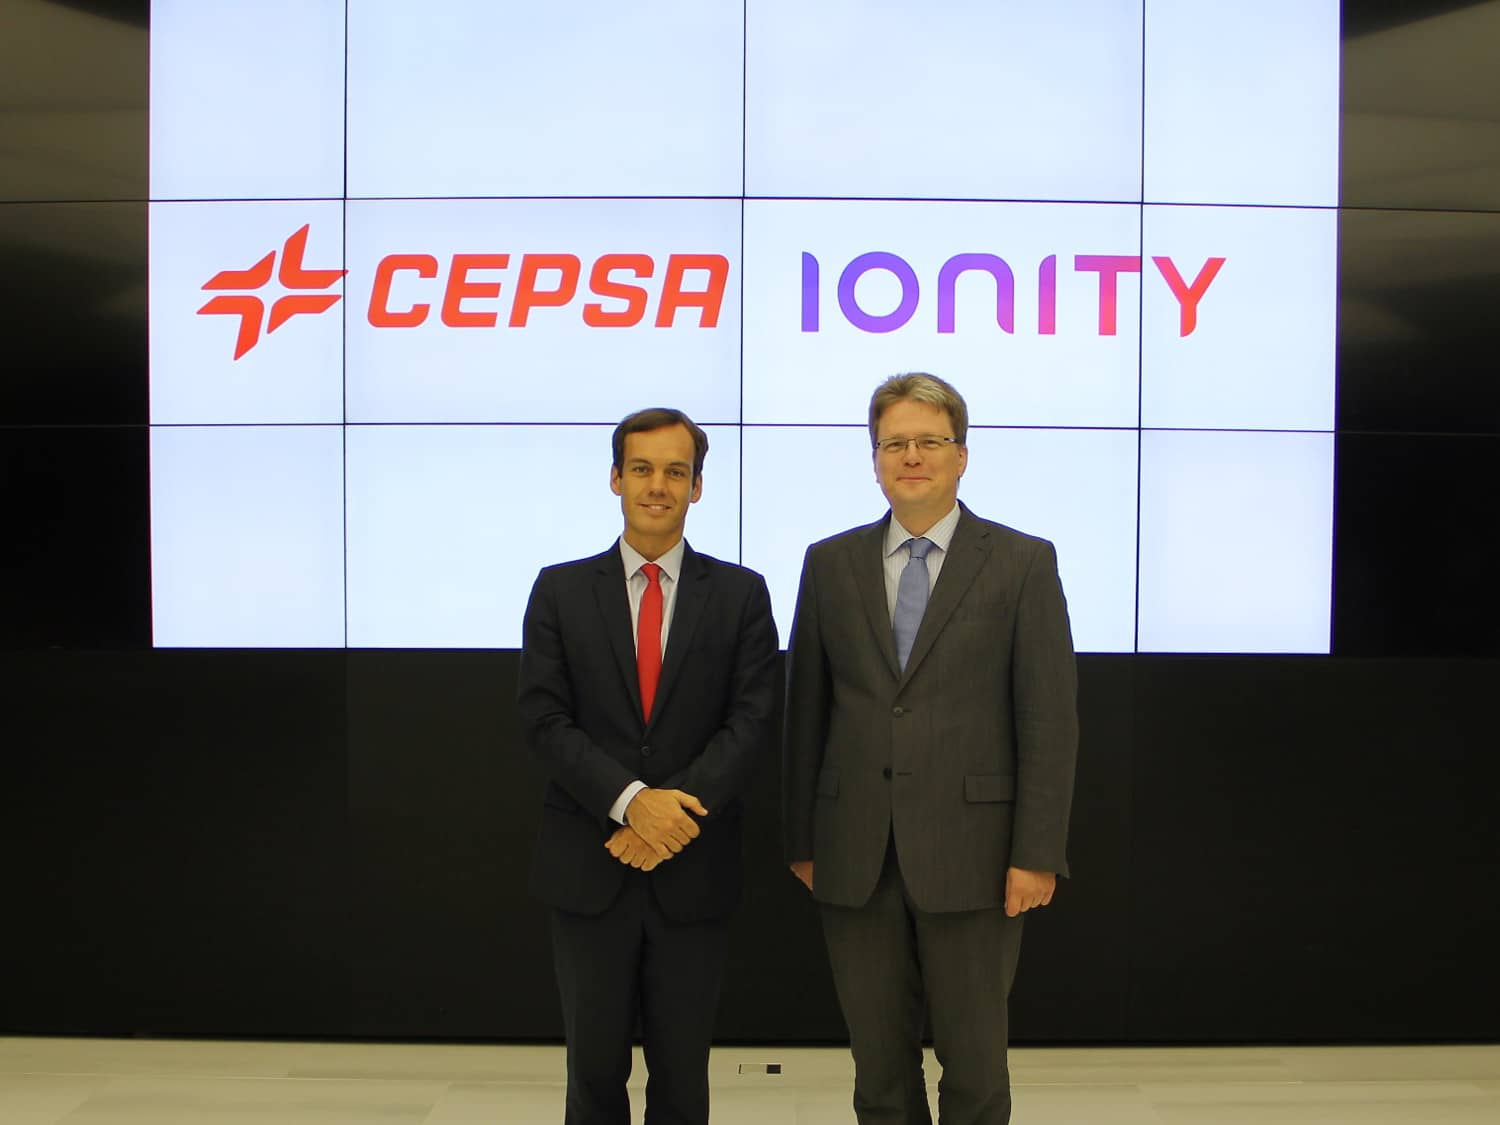 Héctor Perea, Cepsa's Director of Strategy and Corporate Development and Marcus Groll, IONITY's Managing Director and COO